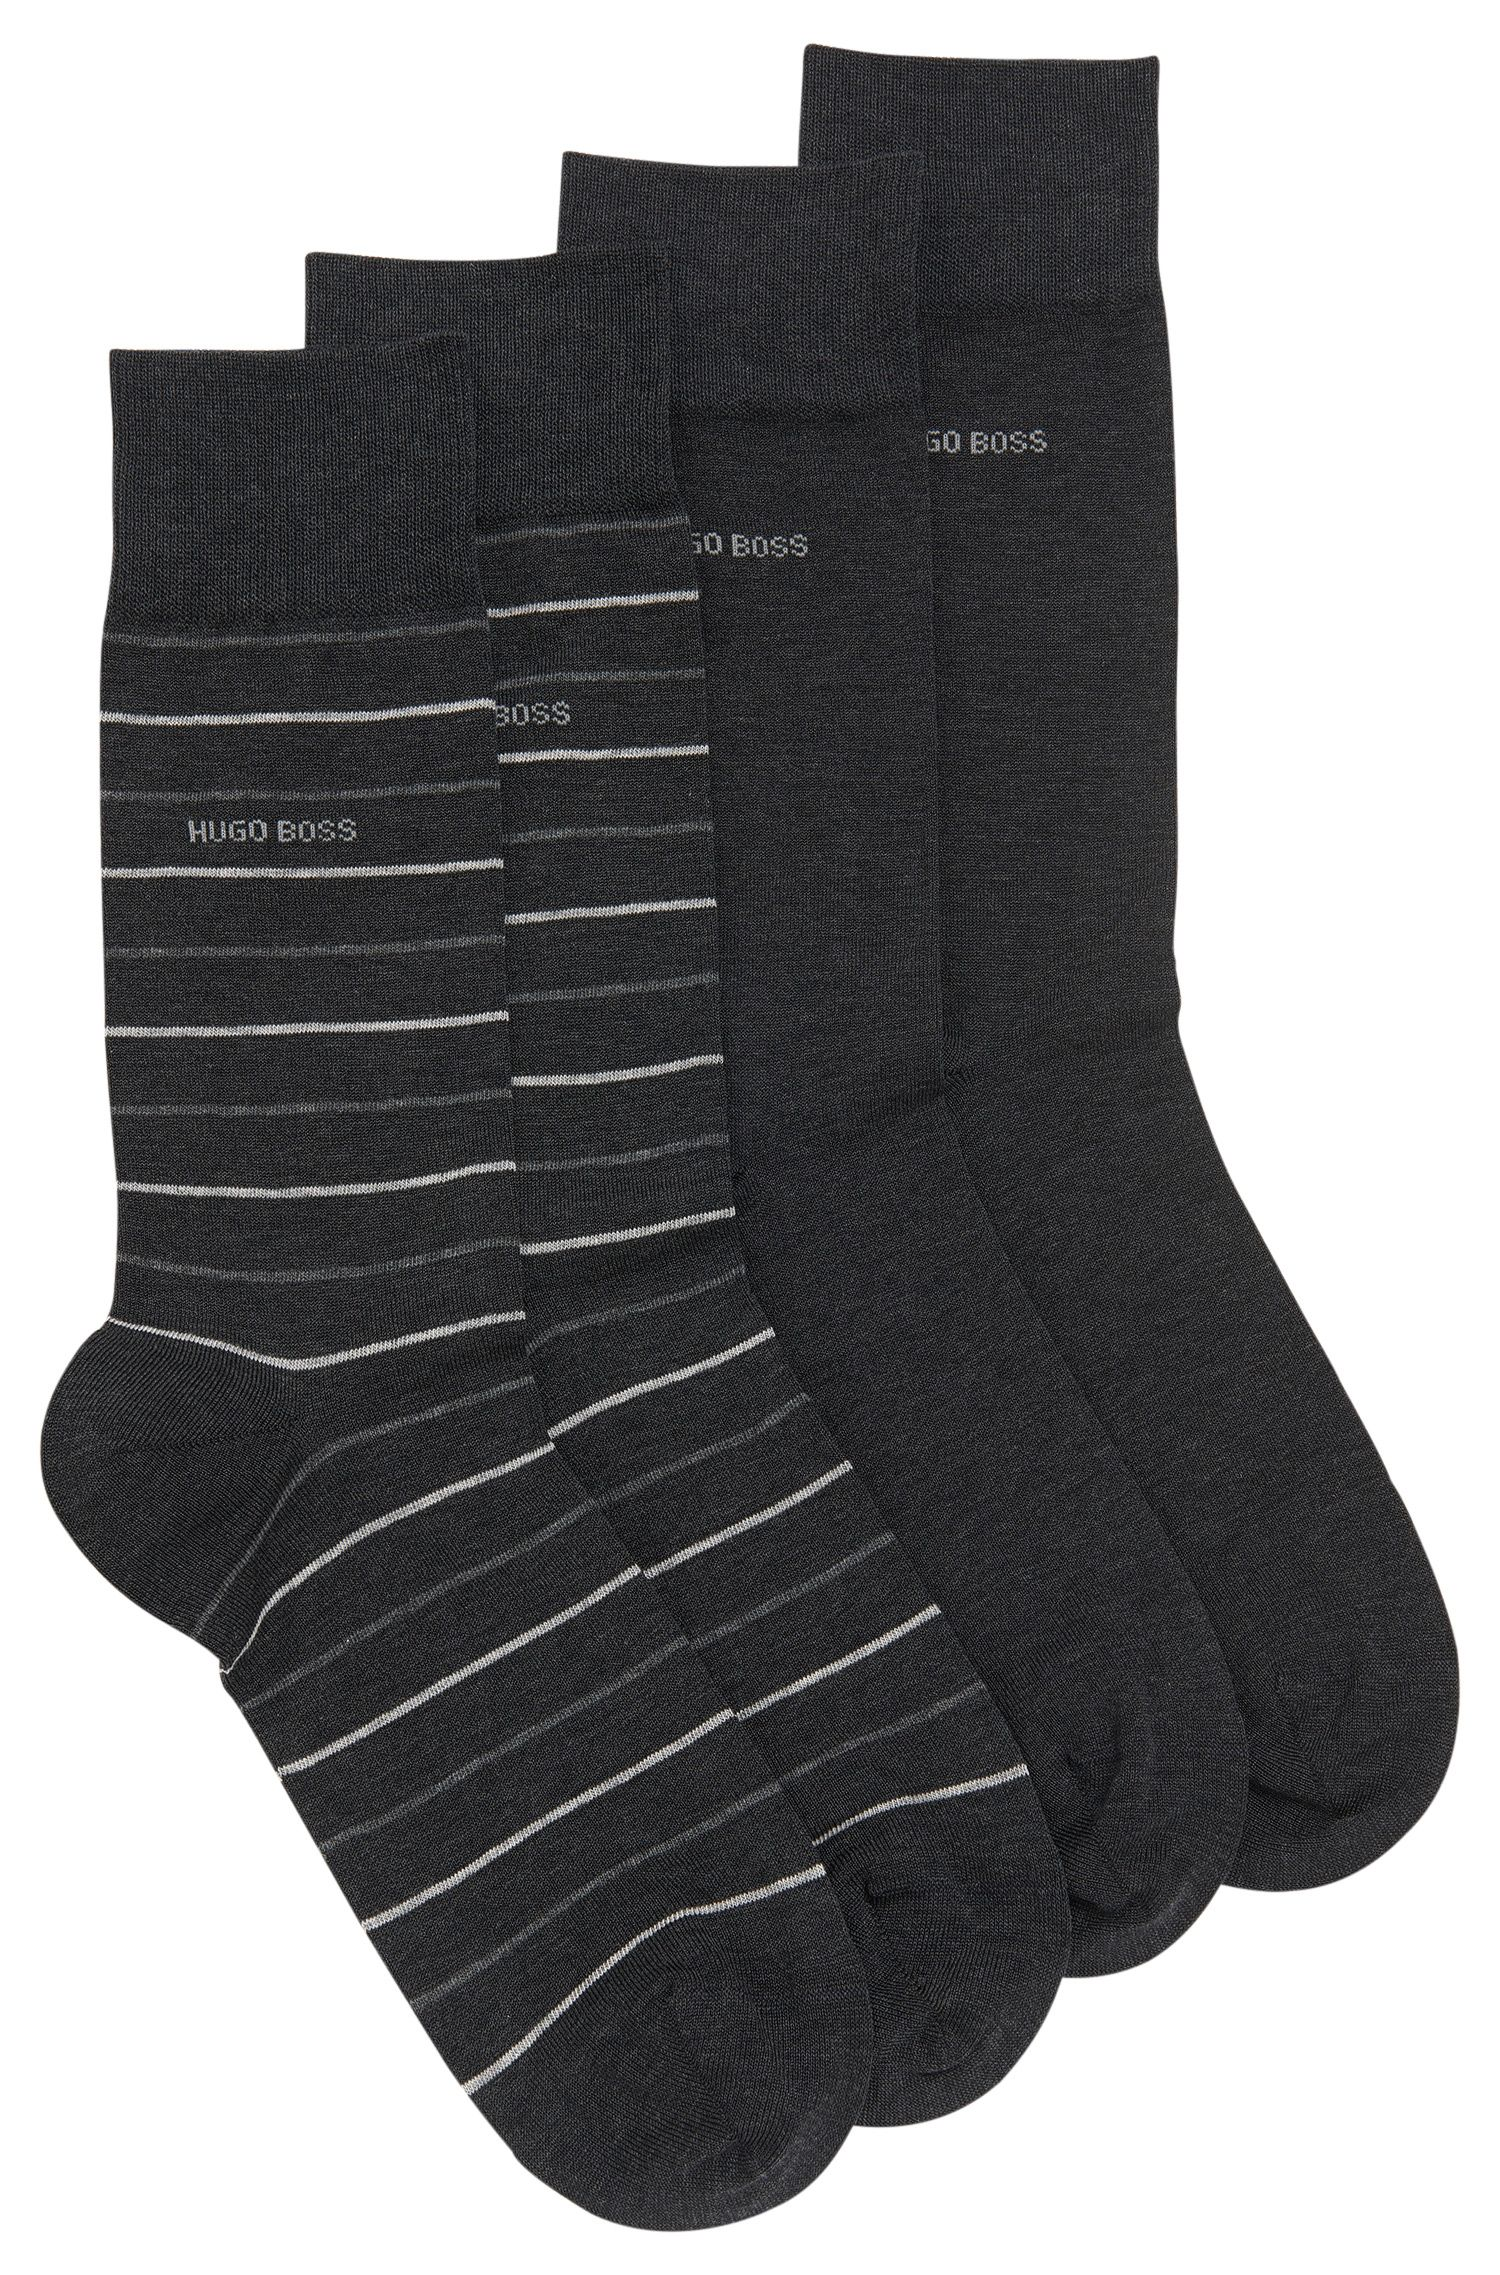 Two-pack of regular-length socks